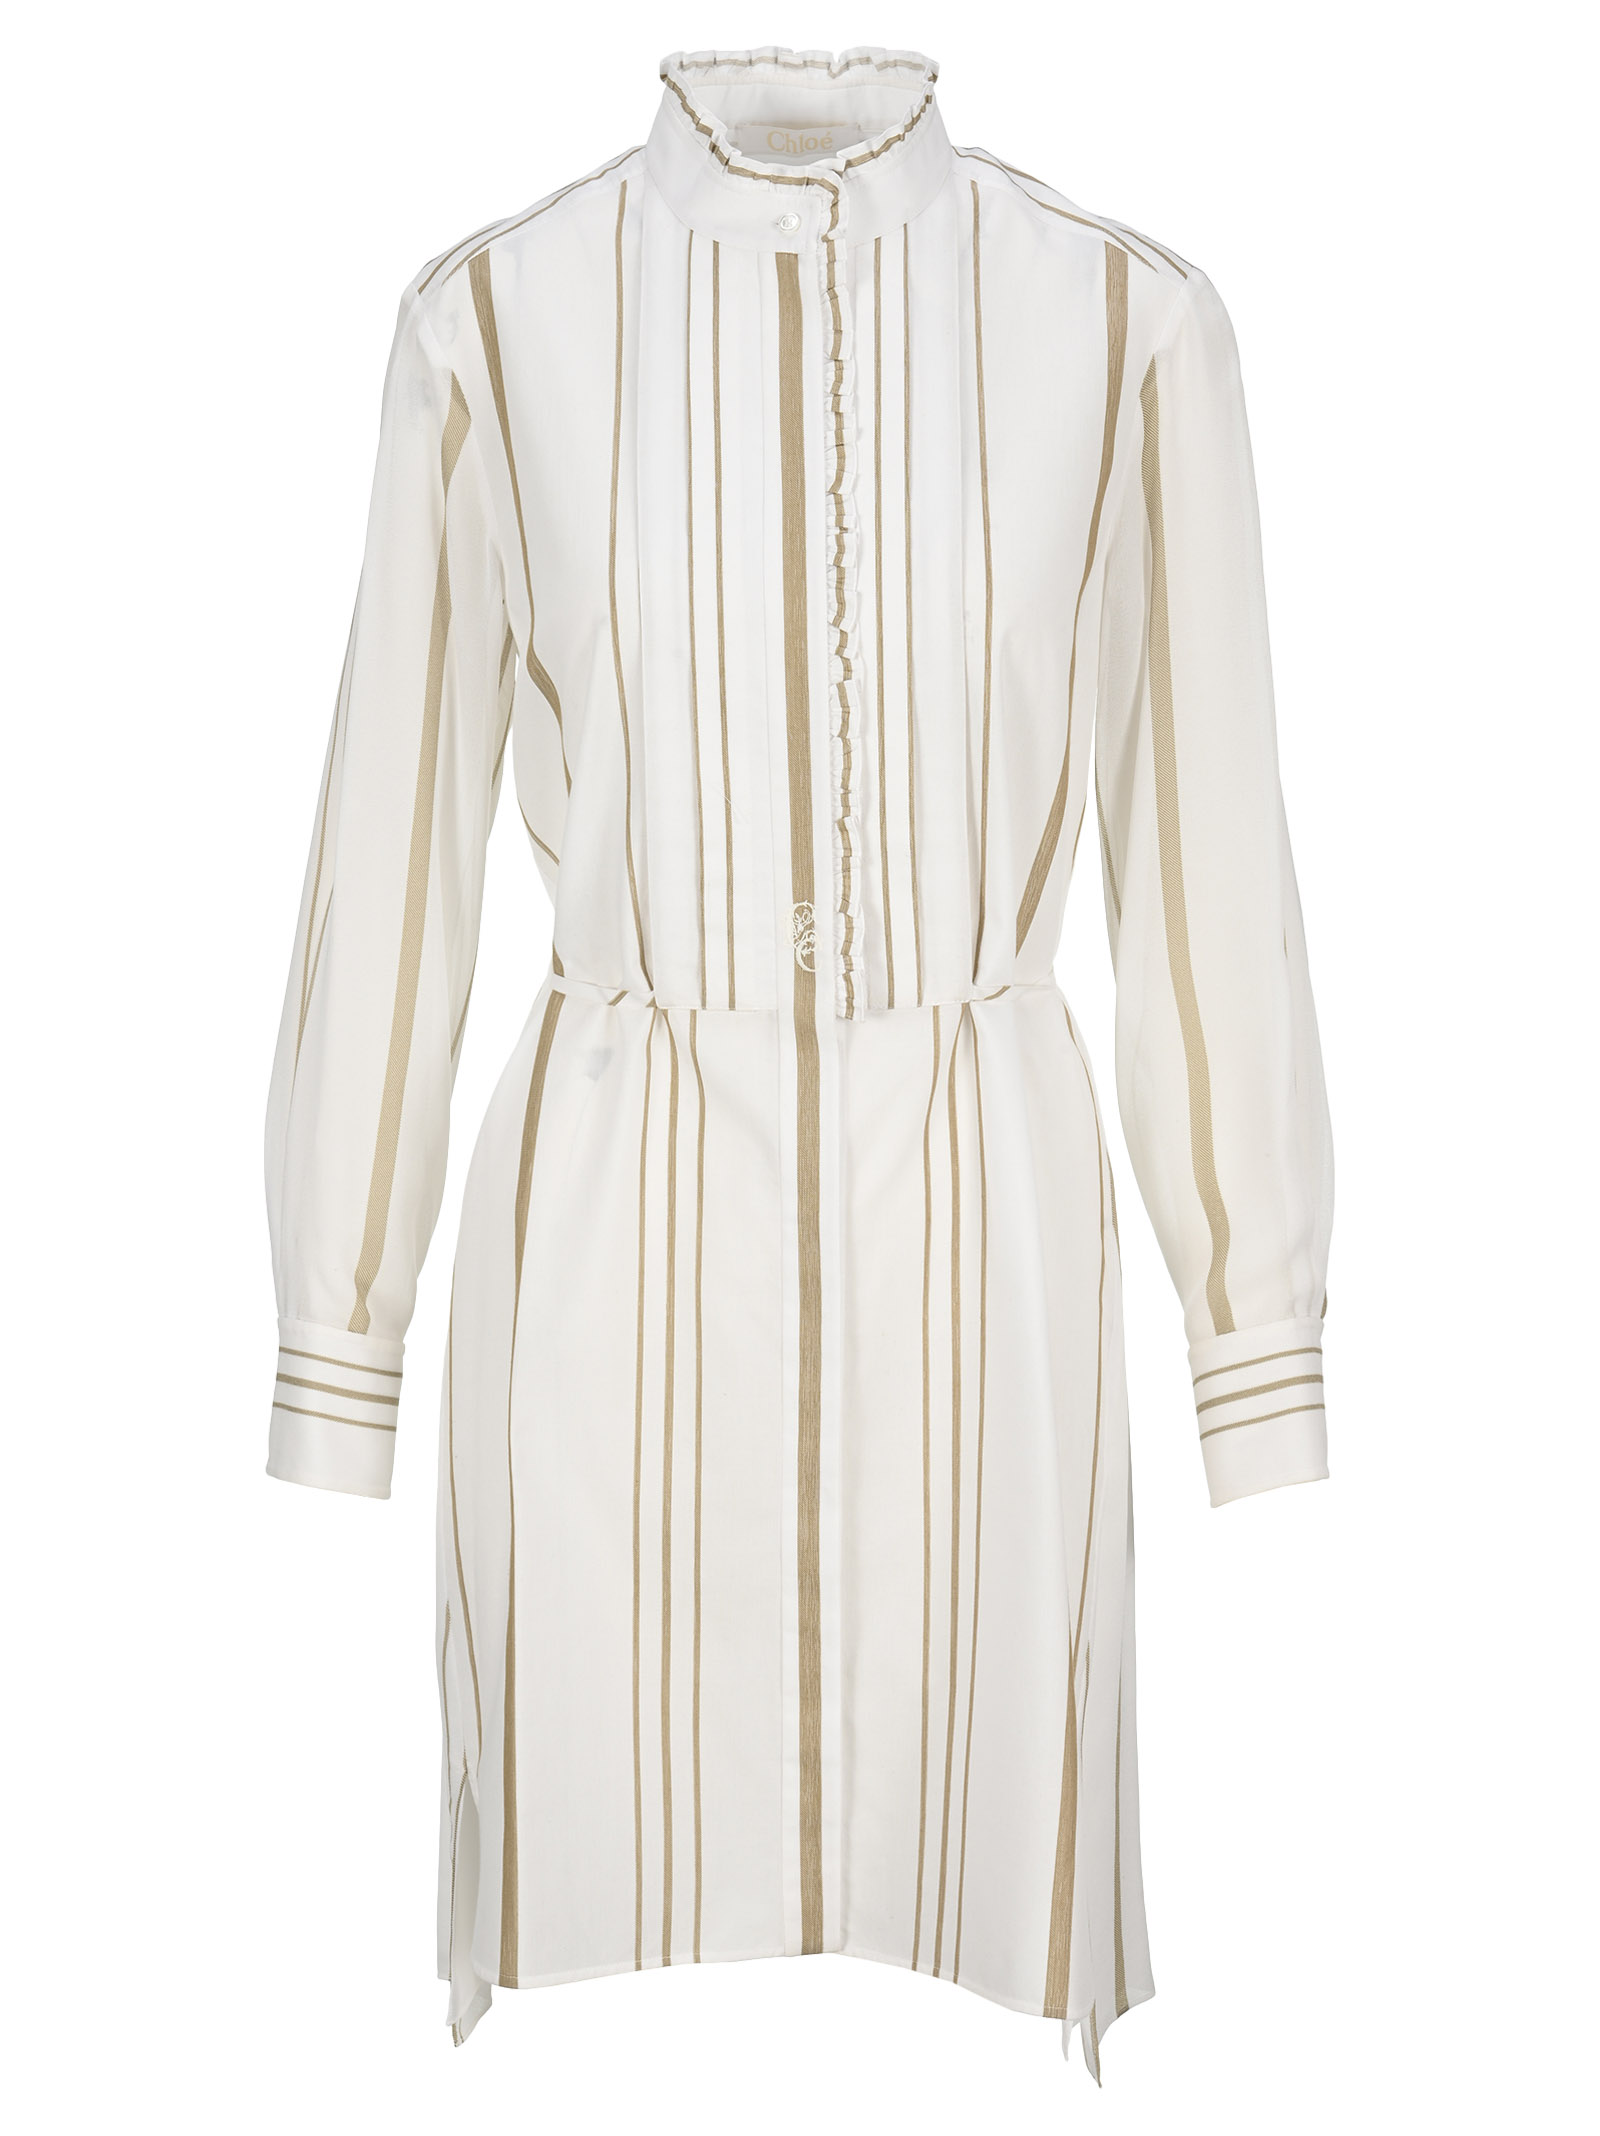 Chloé STRIPED SHIRT DRESS